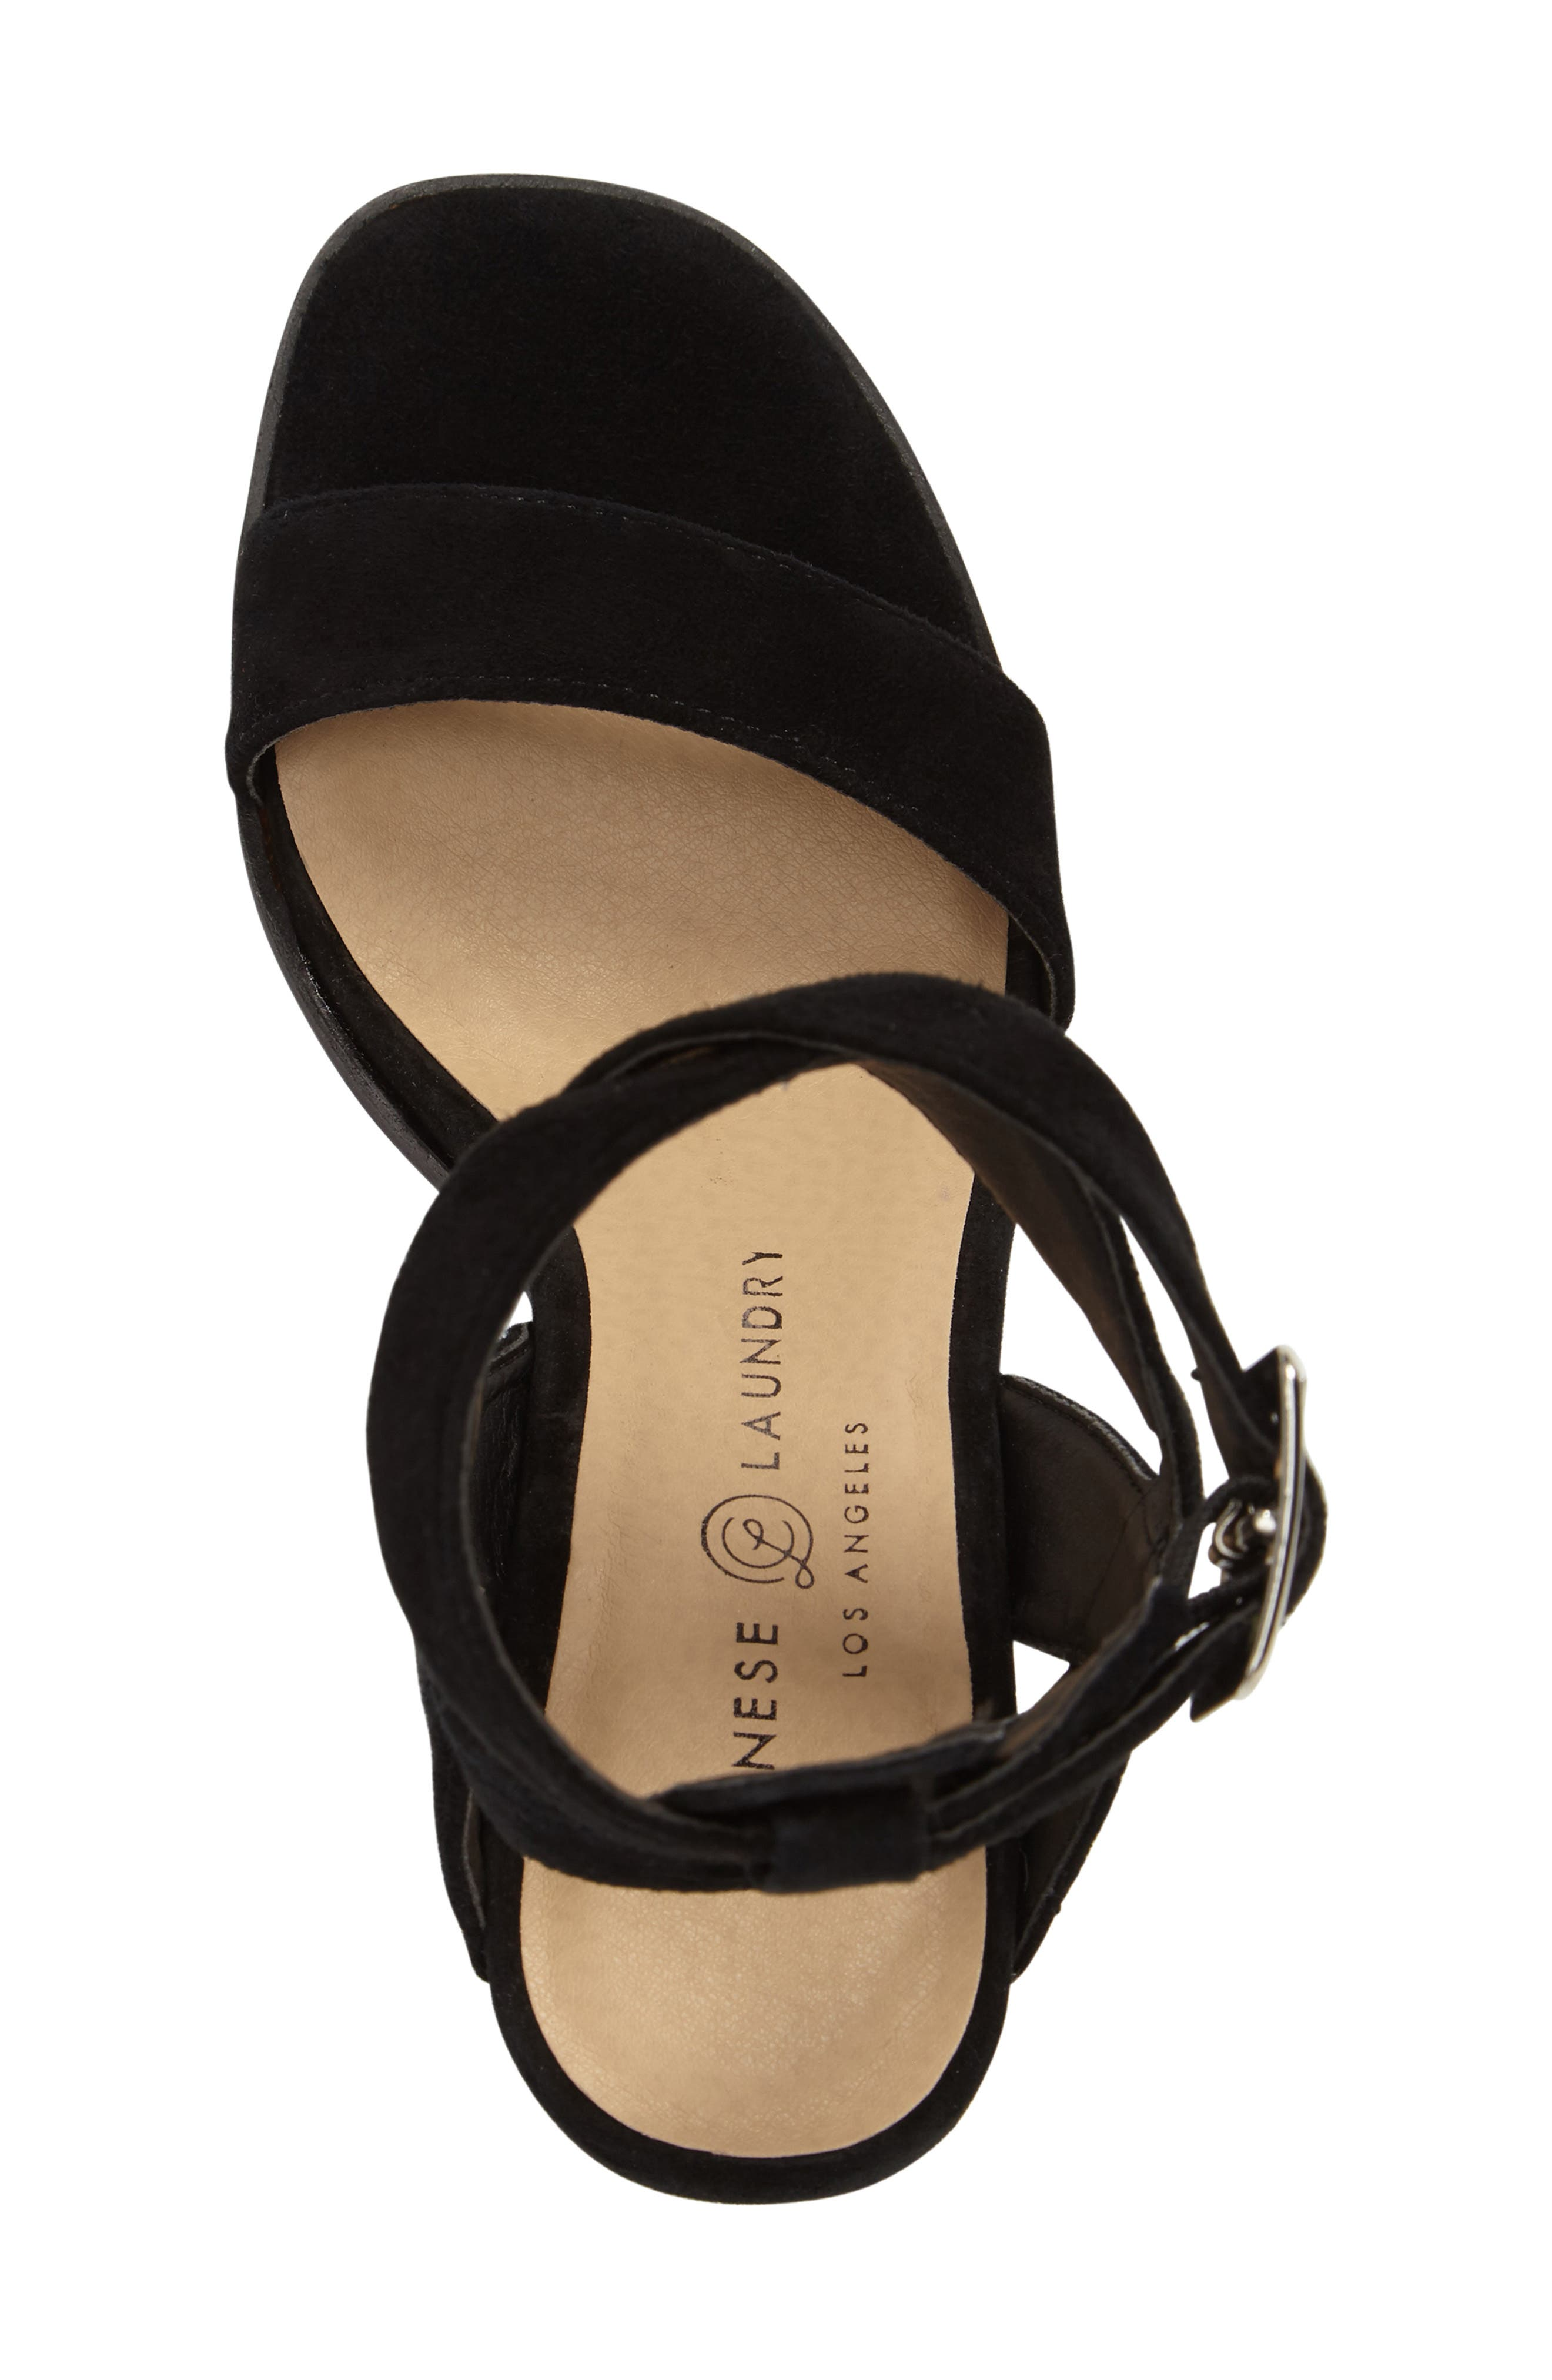 Sitara Ankle Strap Sandal,                             Alternate thumbnail 5, color,                             001